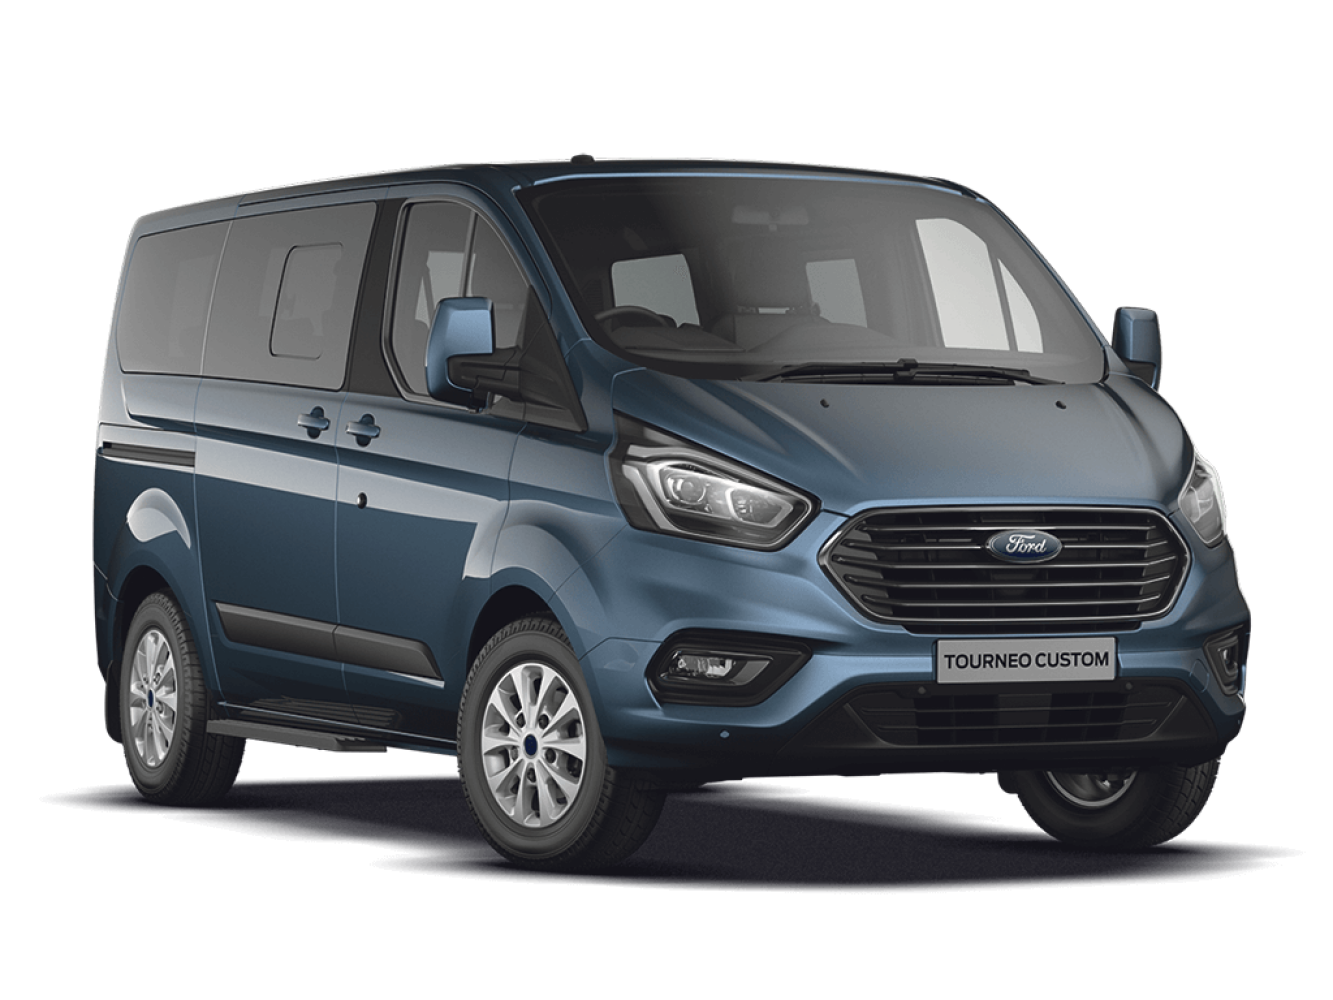 new ford transit custom tourneo l1 diesel fwd 2 0 ecoblue 130ps low roof 8 seater zetec for sale. Black Bedroom Furniture Sets. Home Design Ideas